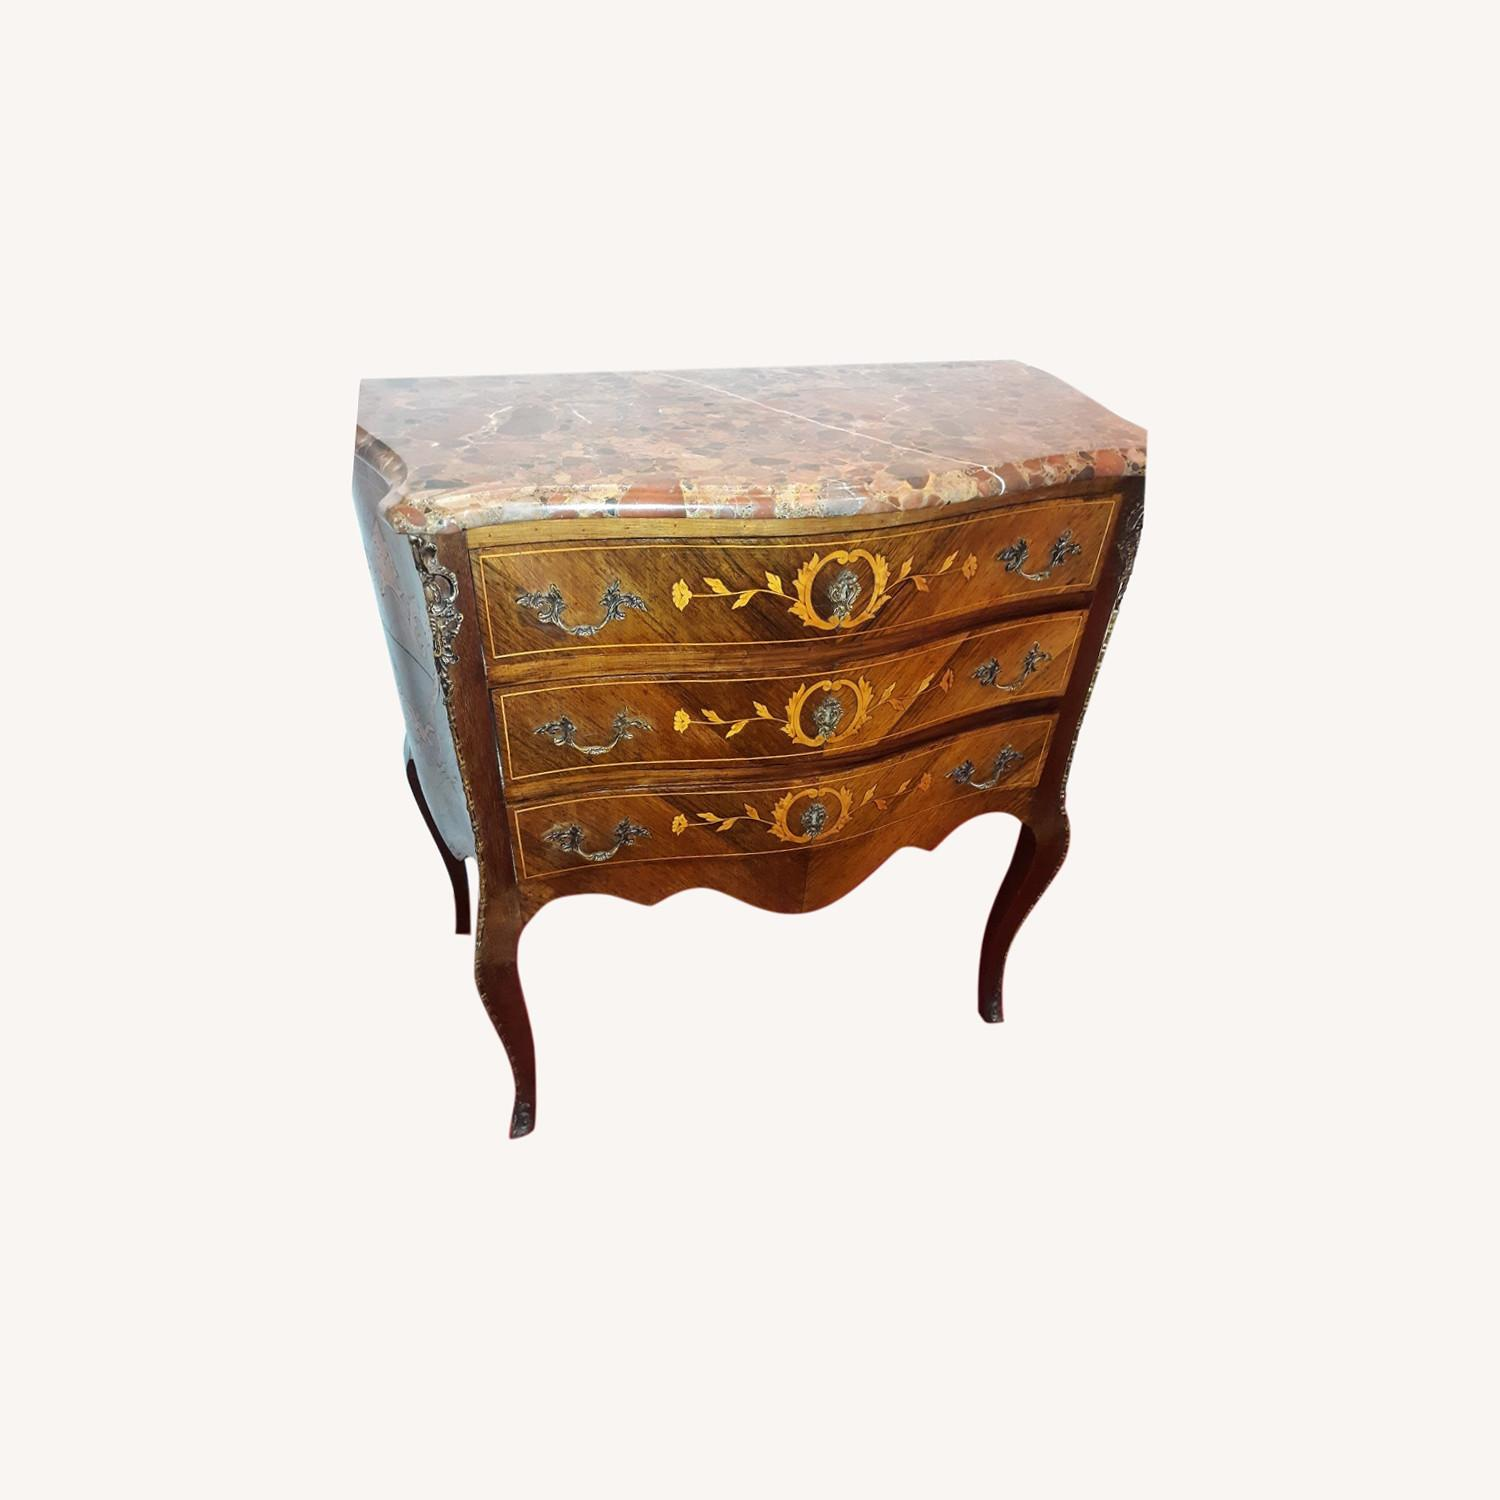 French Provincial Louis XV Commode - image-6